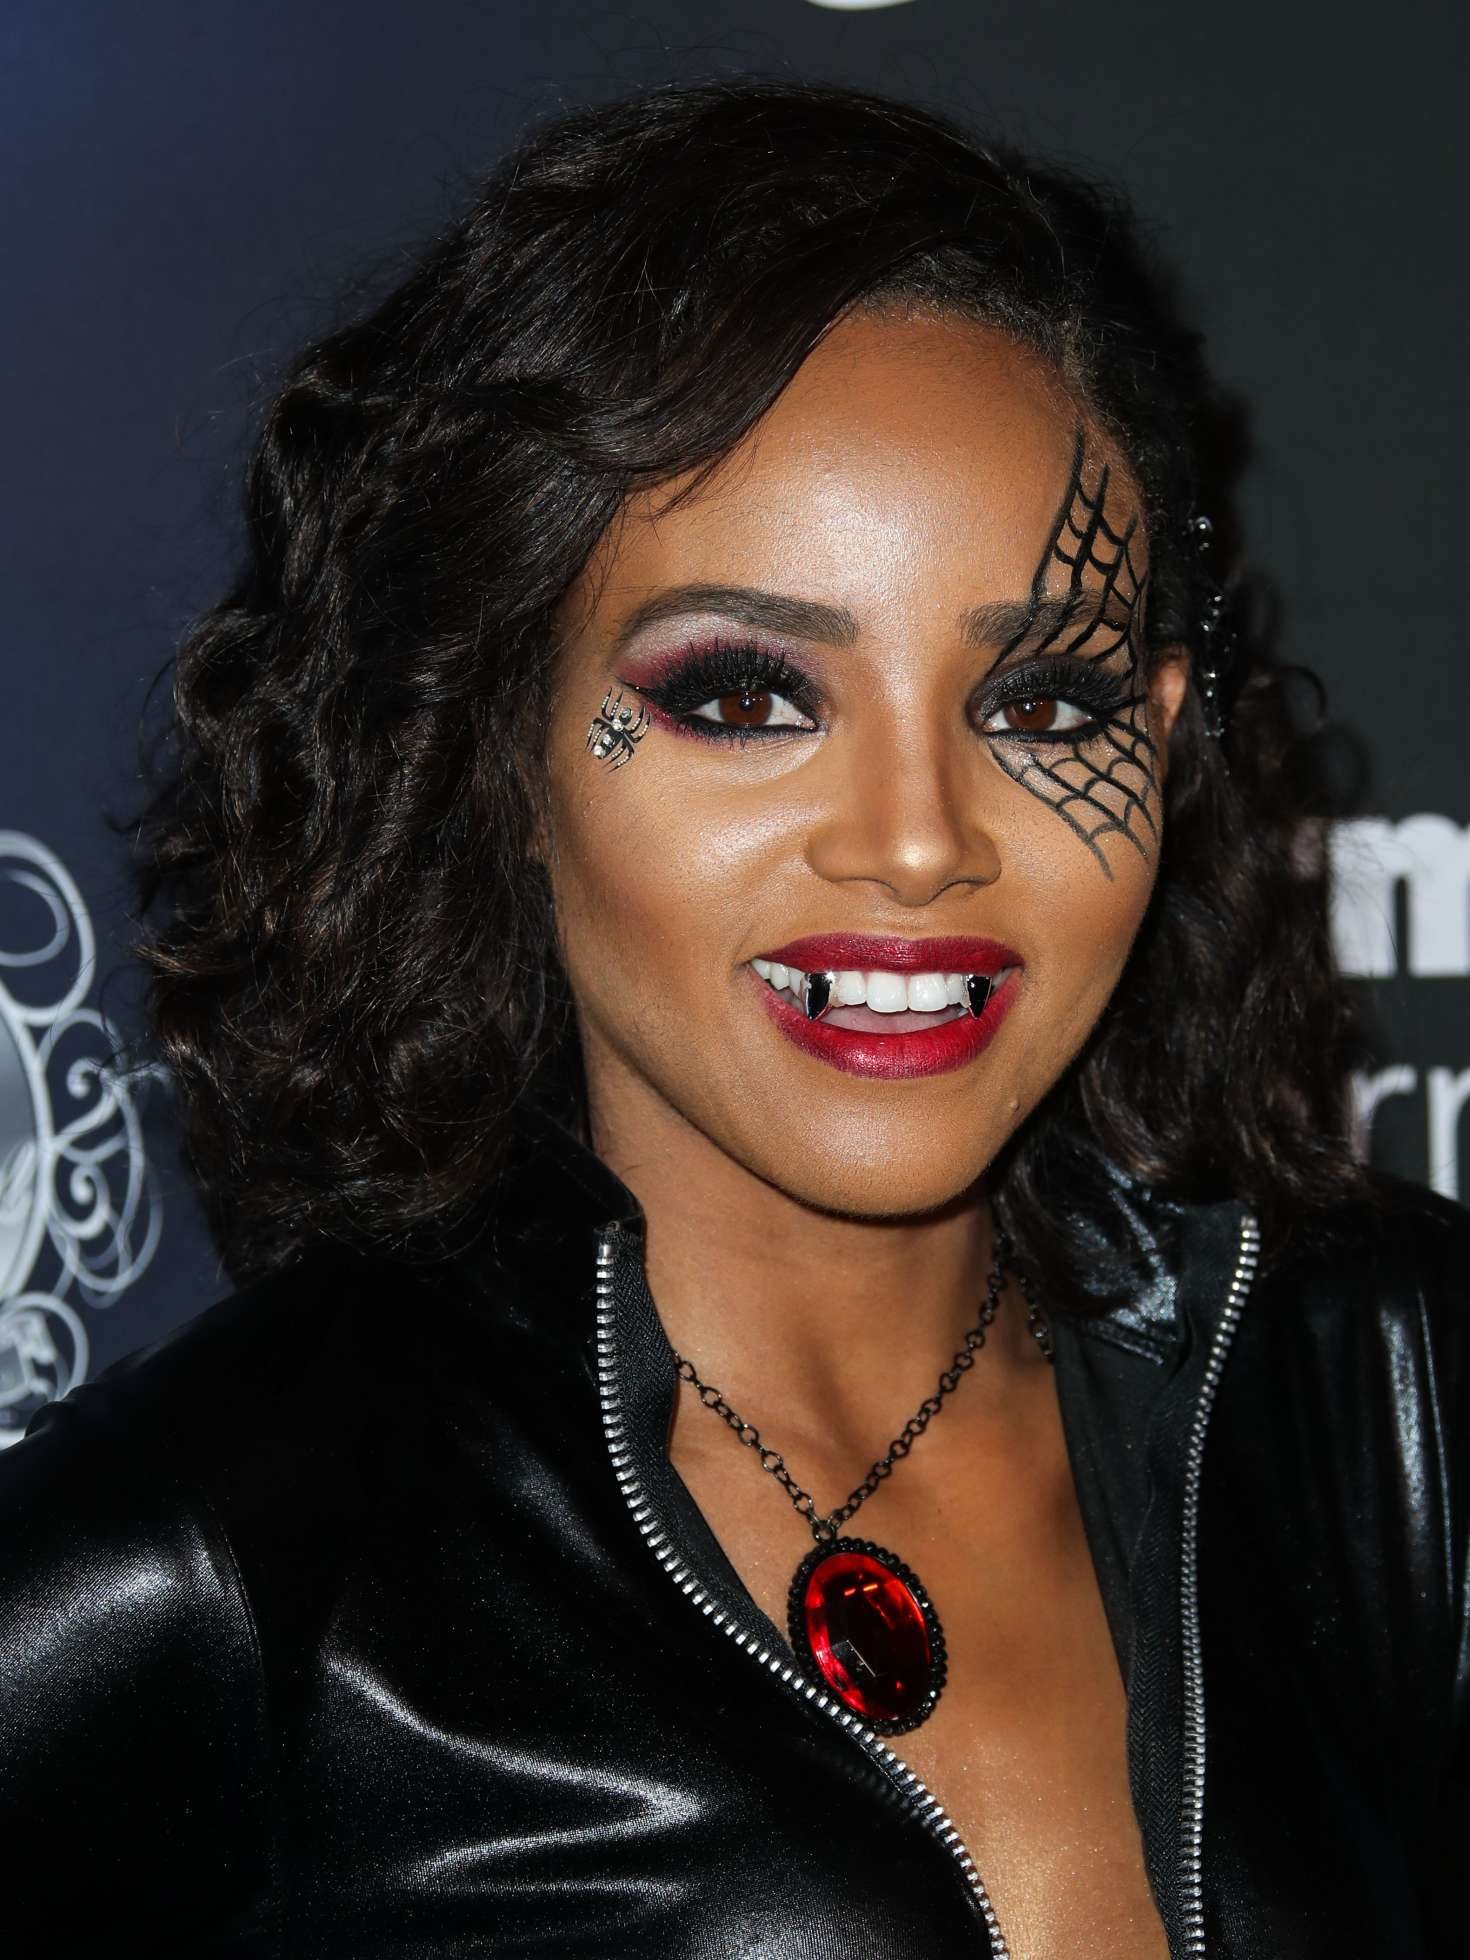 Instagram Meagan Tandy nudes (79 foto and video), Topless, Is a cute, Feet, bra 2019